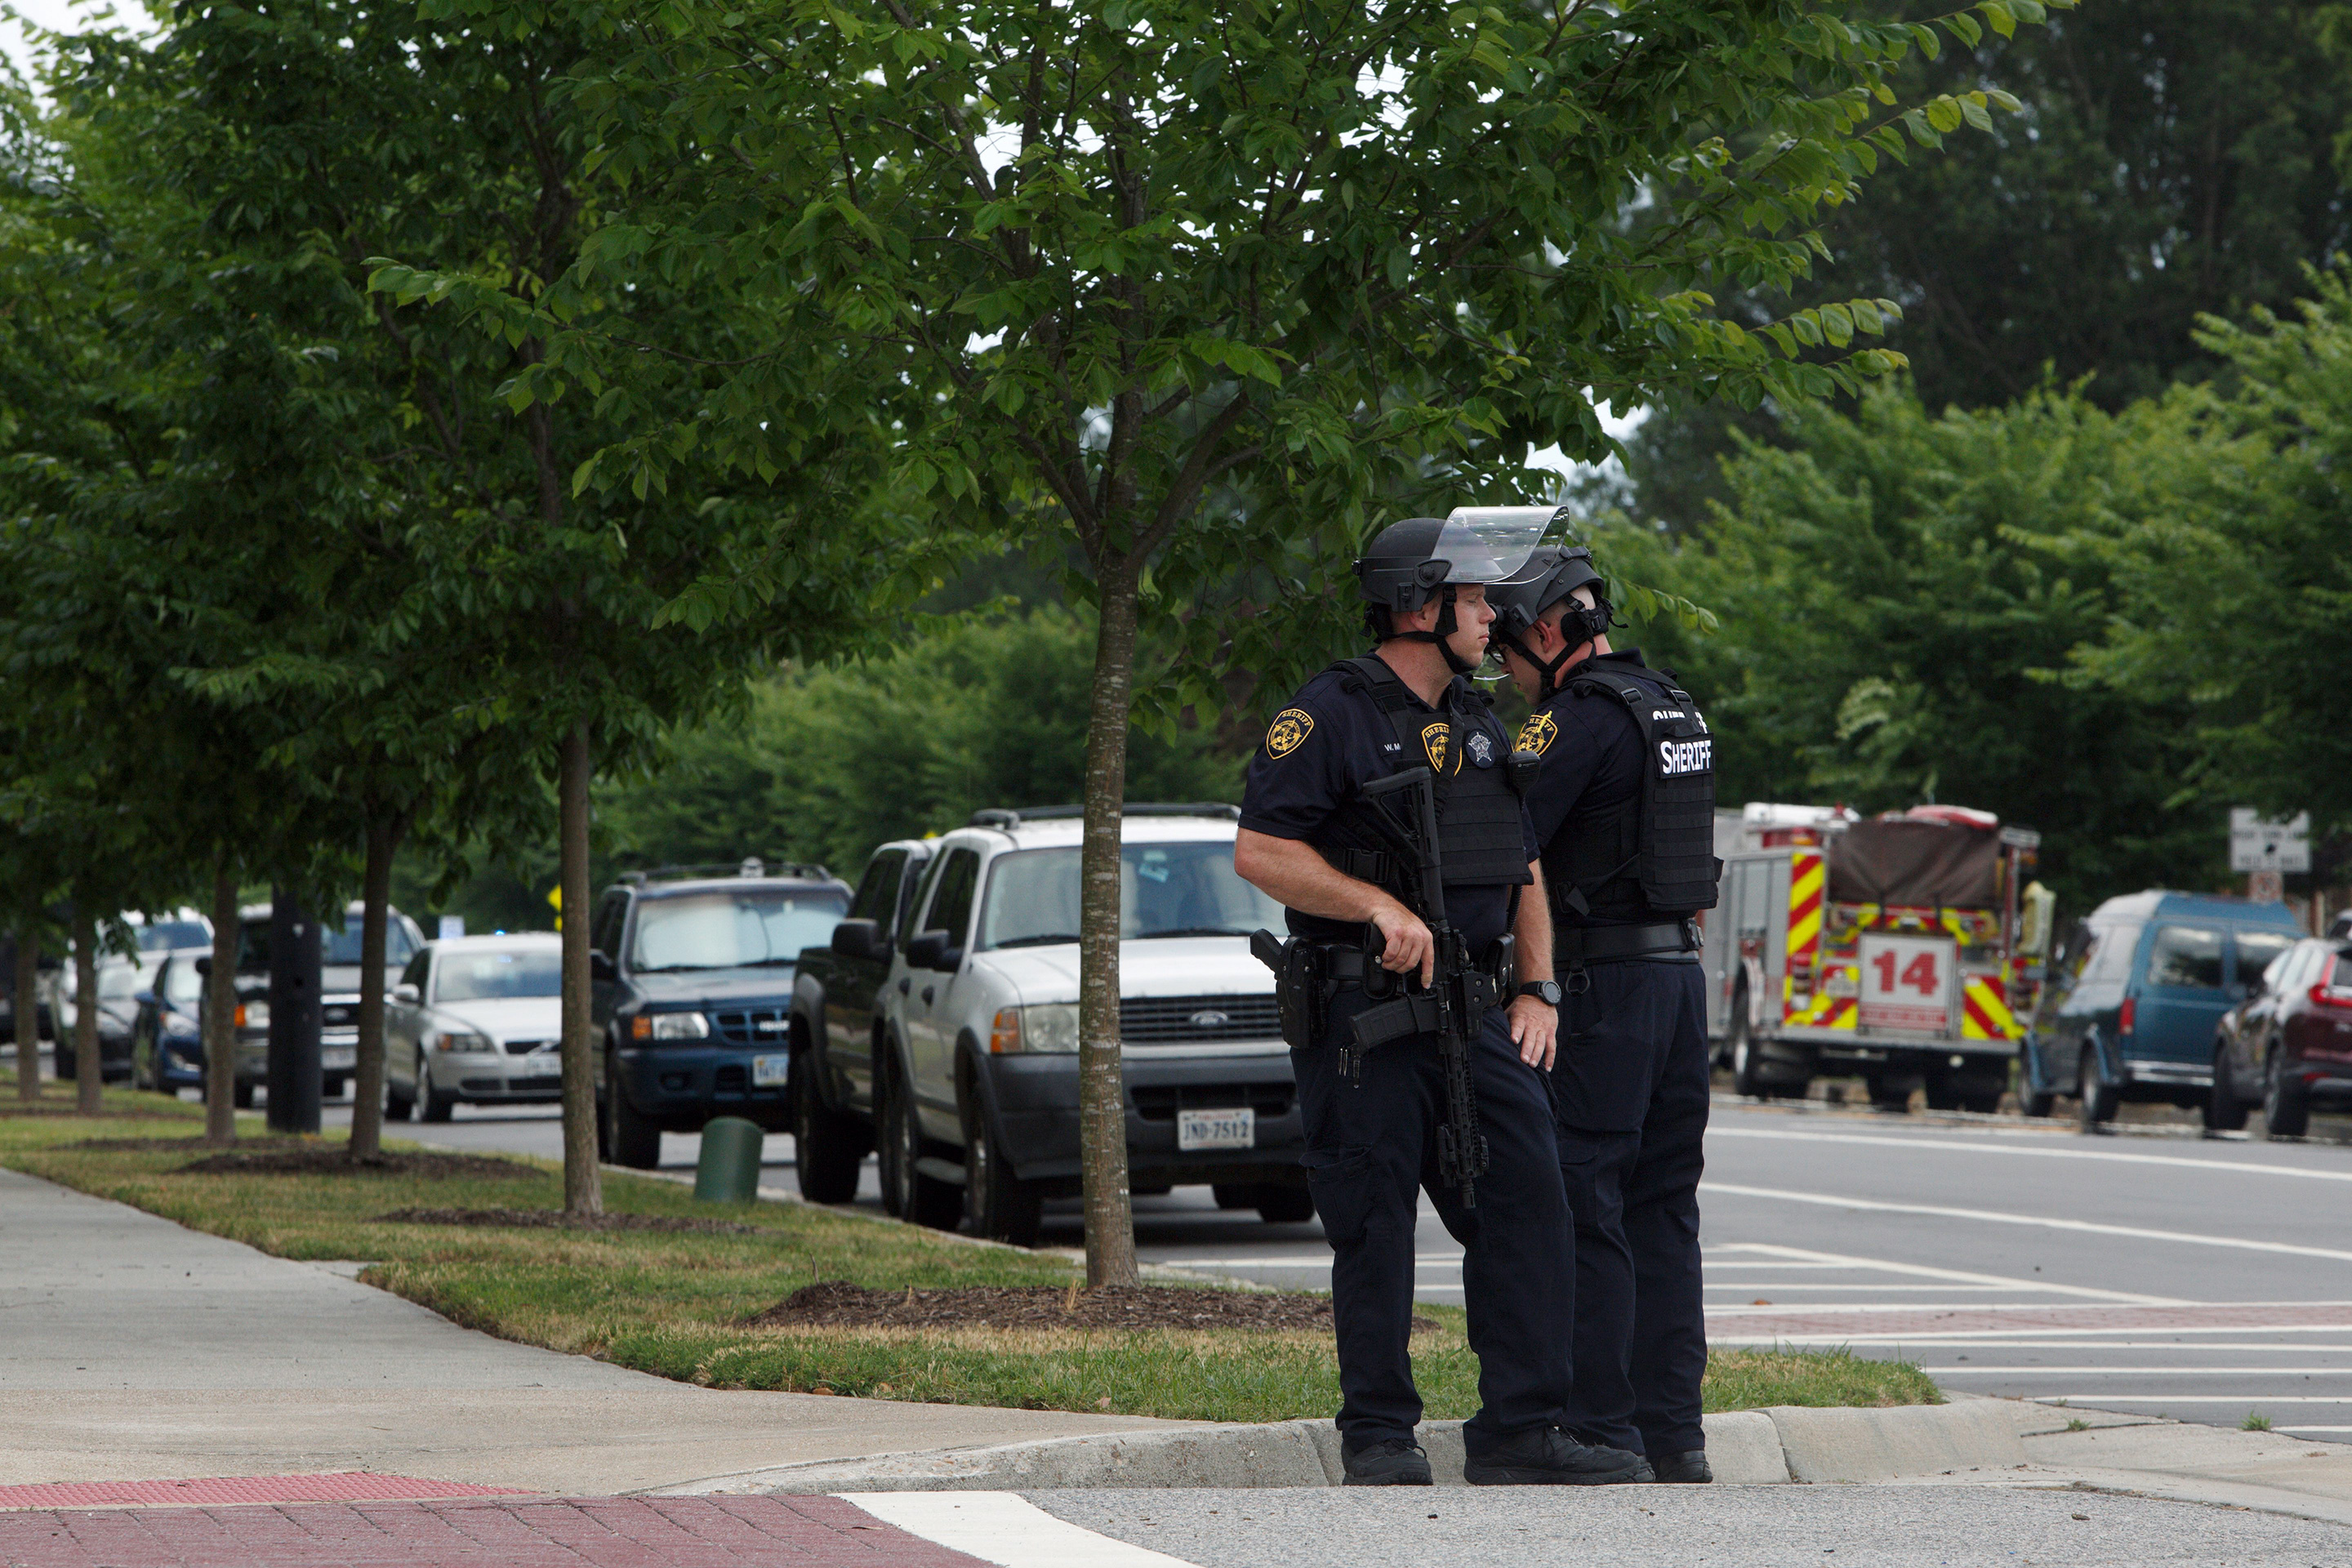 Twelve people killed in shooting at Virginia Beach municipal